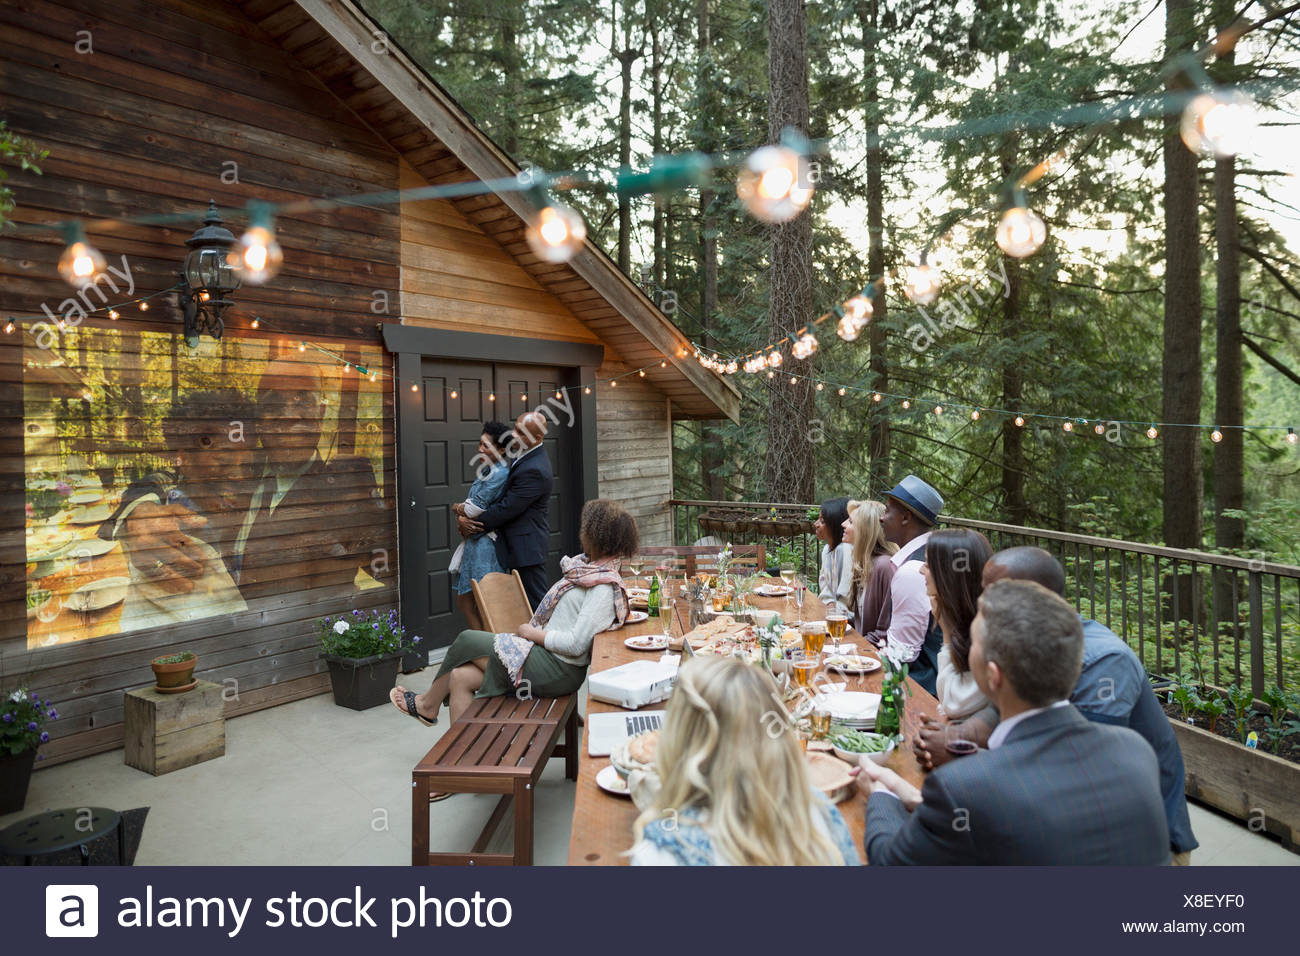 Friends watching projected slideshow at anniversary party on cabin balcony in woods - Stock Image